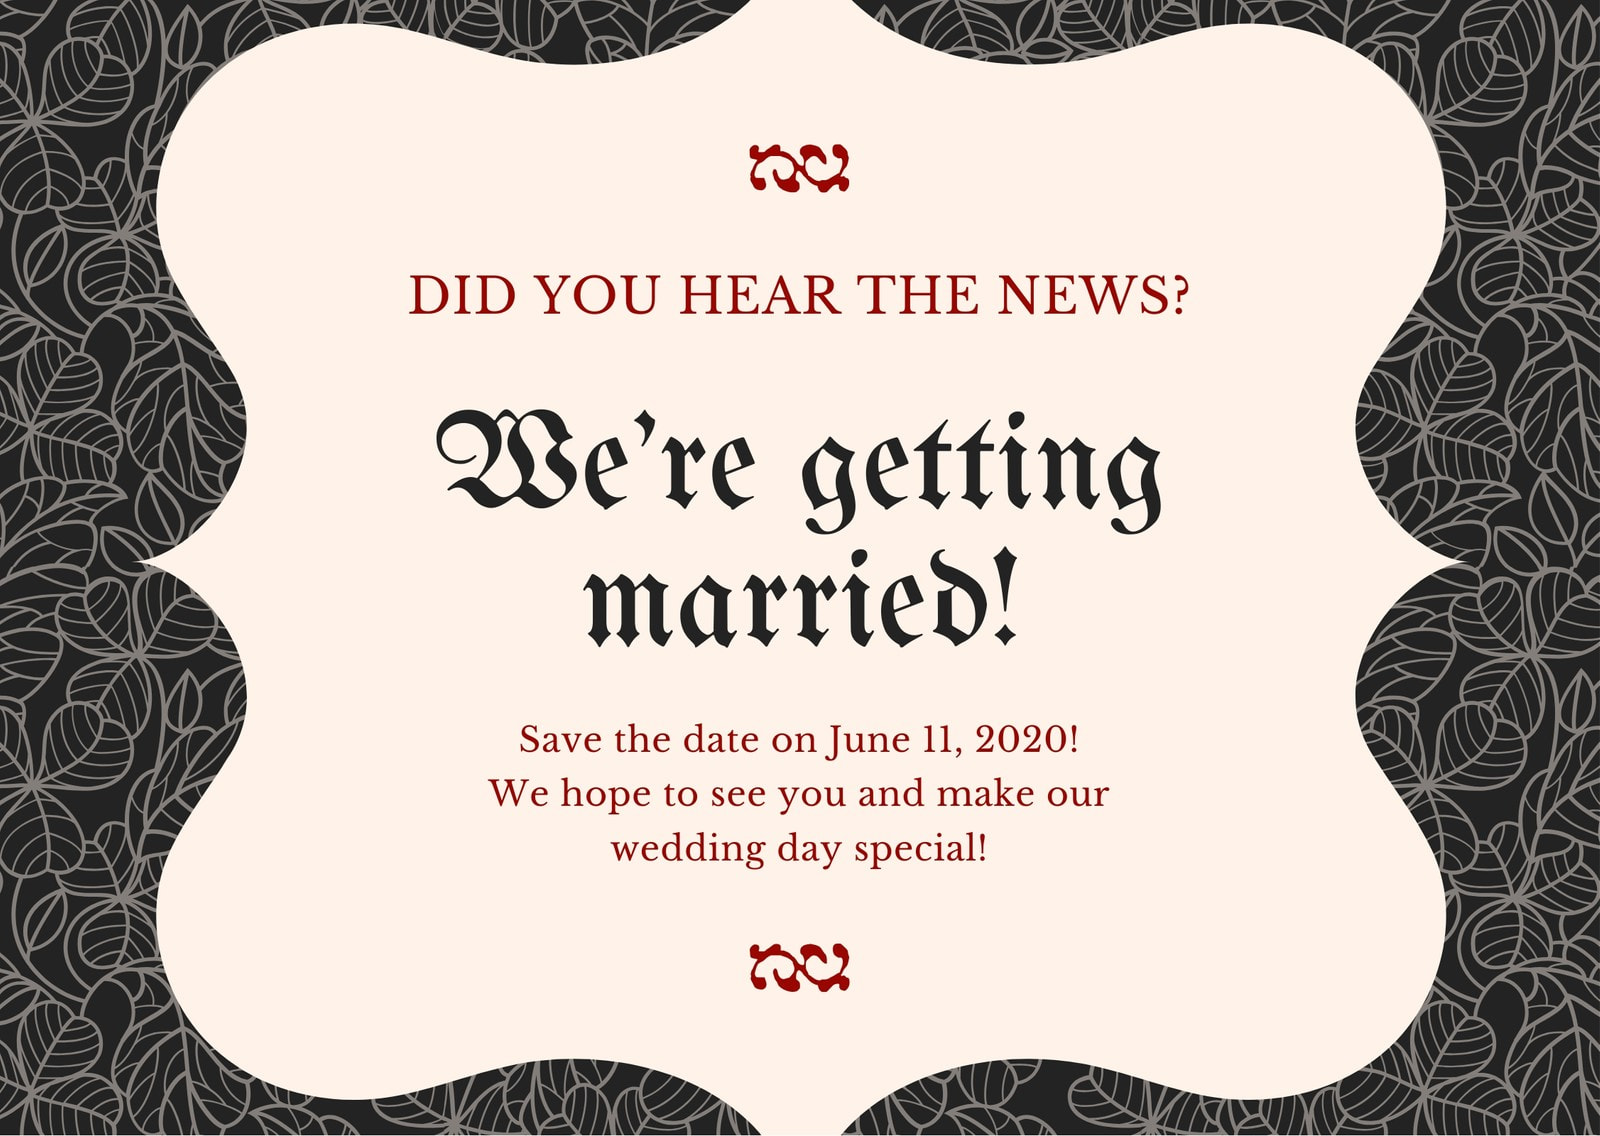 Floral Gothic Wedding Save The Date Card